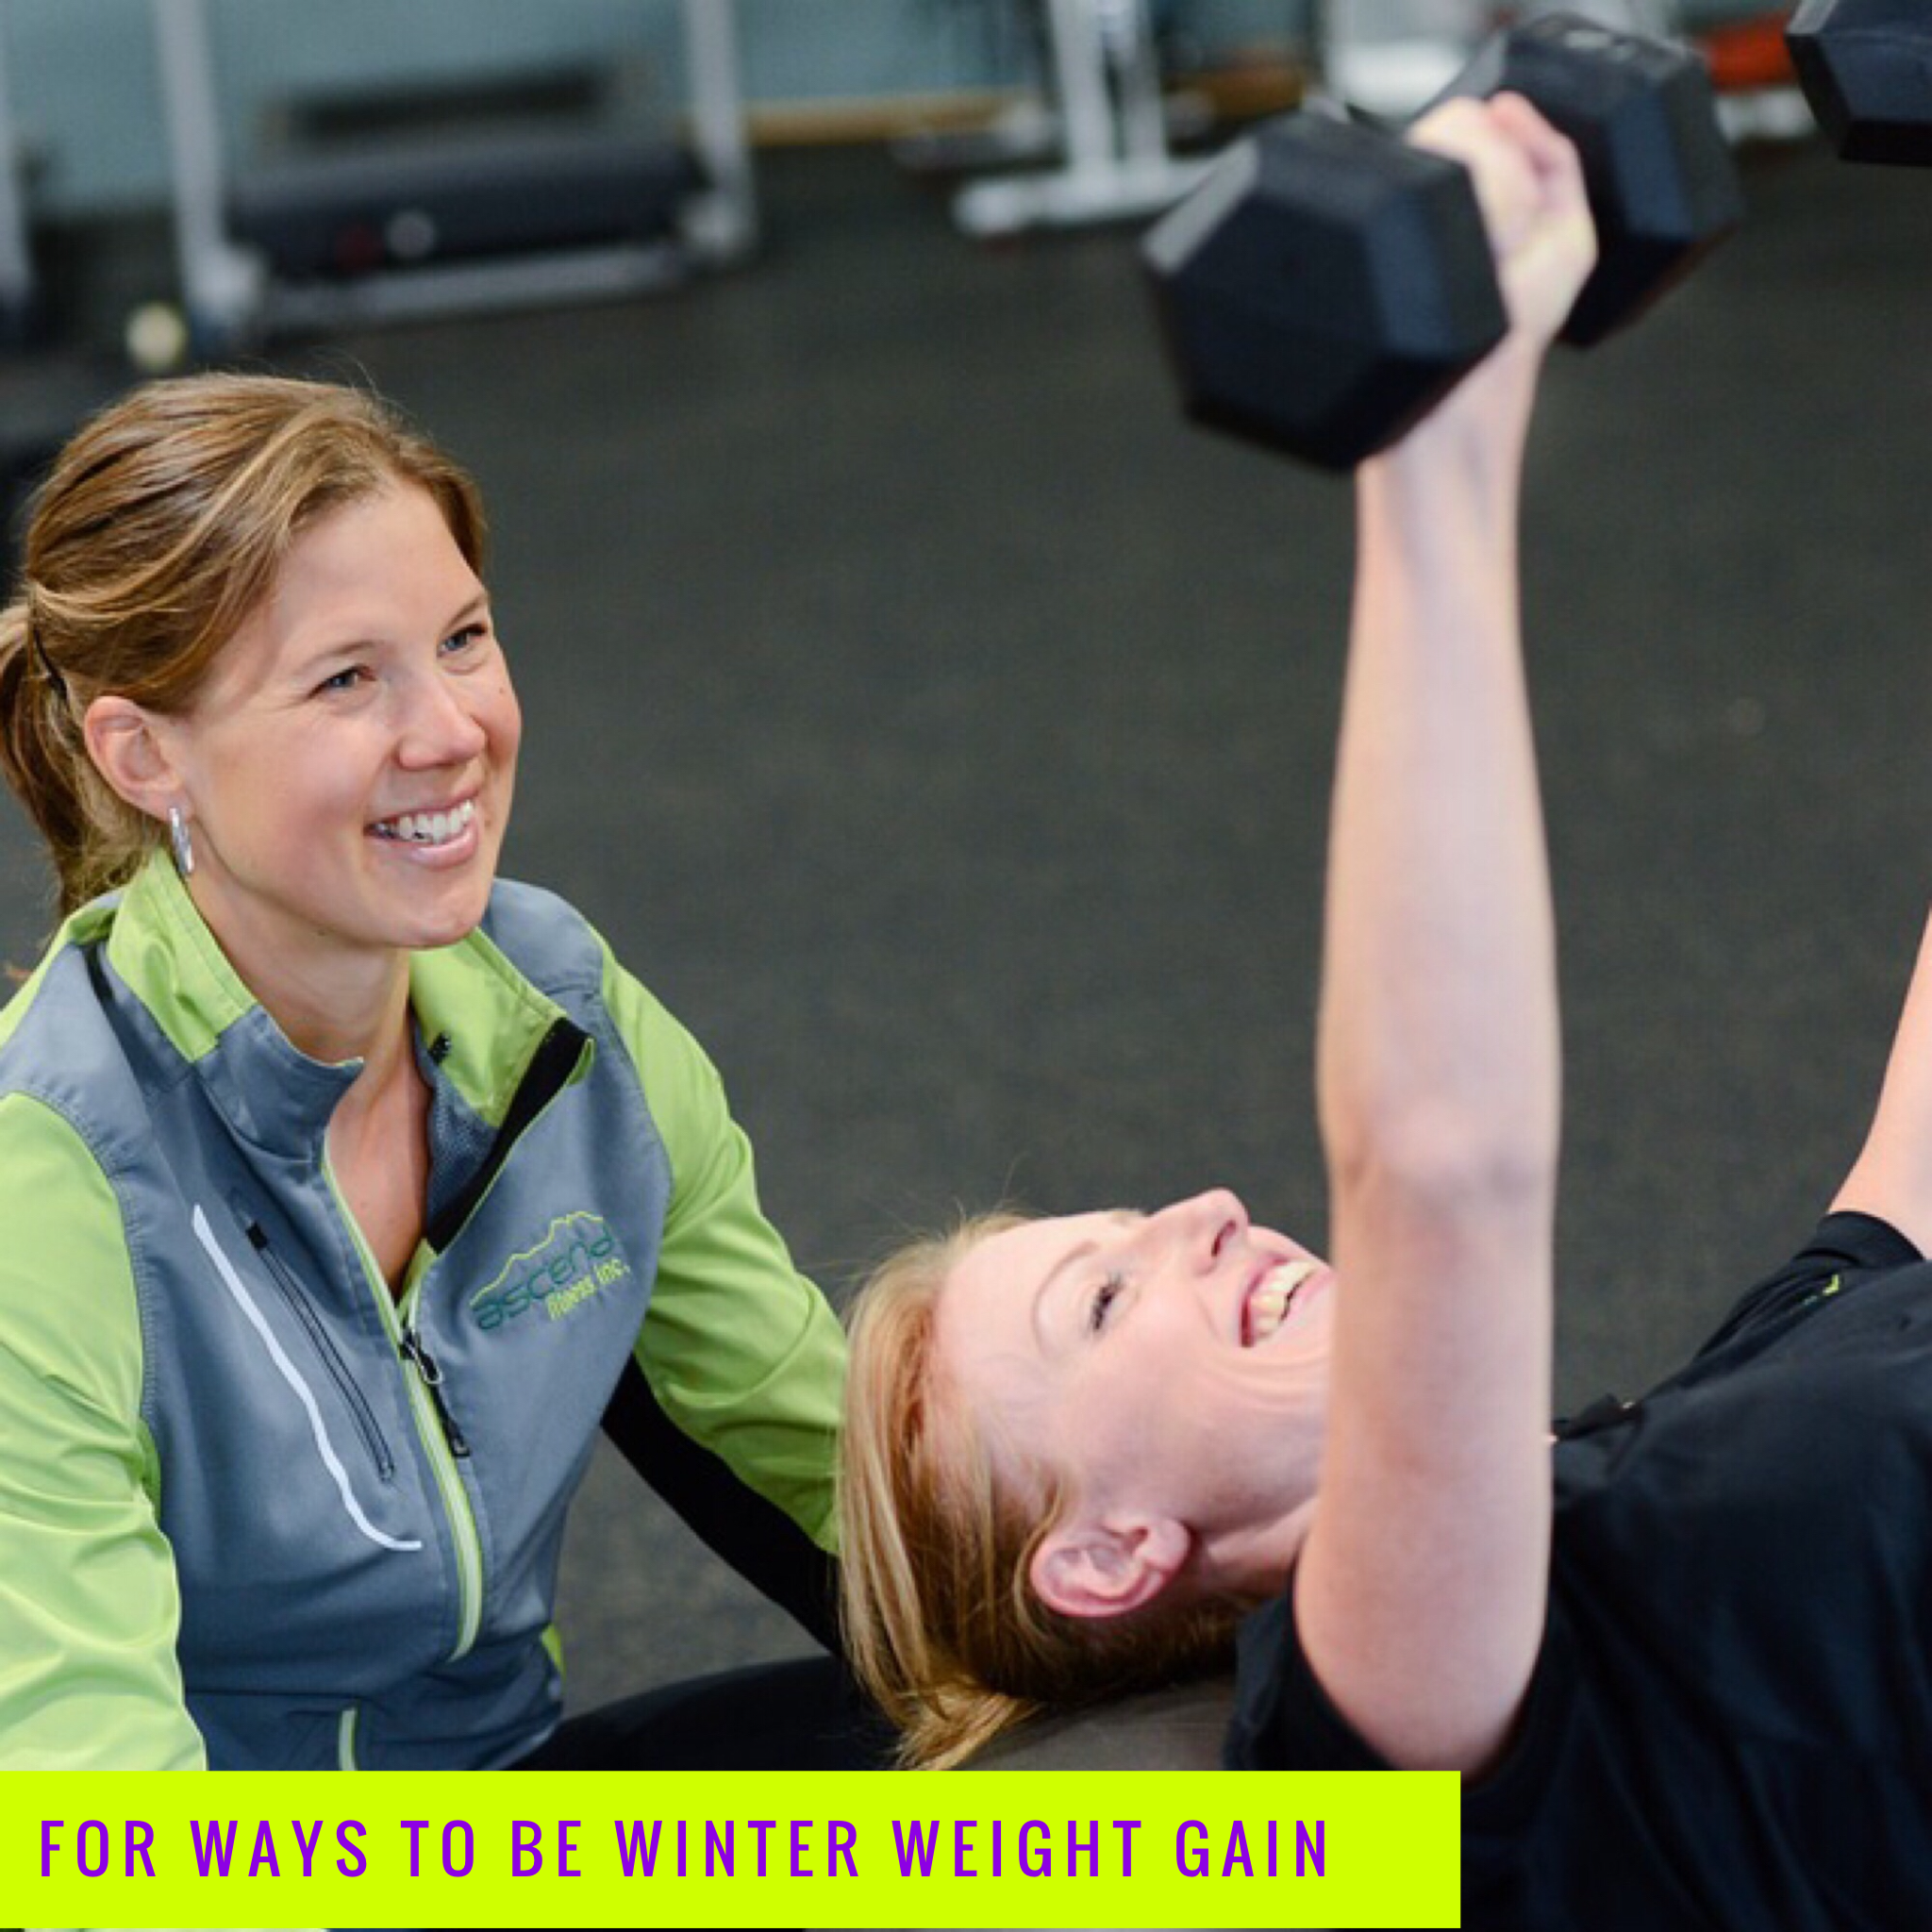 It's all too easy to unconsciously pack on the pounds during winter. After all, we're likely to spend most of our time indoors taking part in sedentary activities and eating comfort foods. The best way to put a stop to winter weight gain is to combat its effects before it even begins.